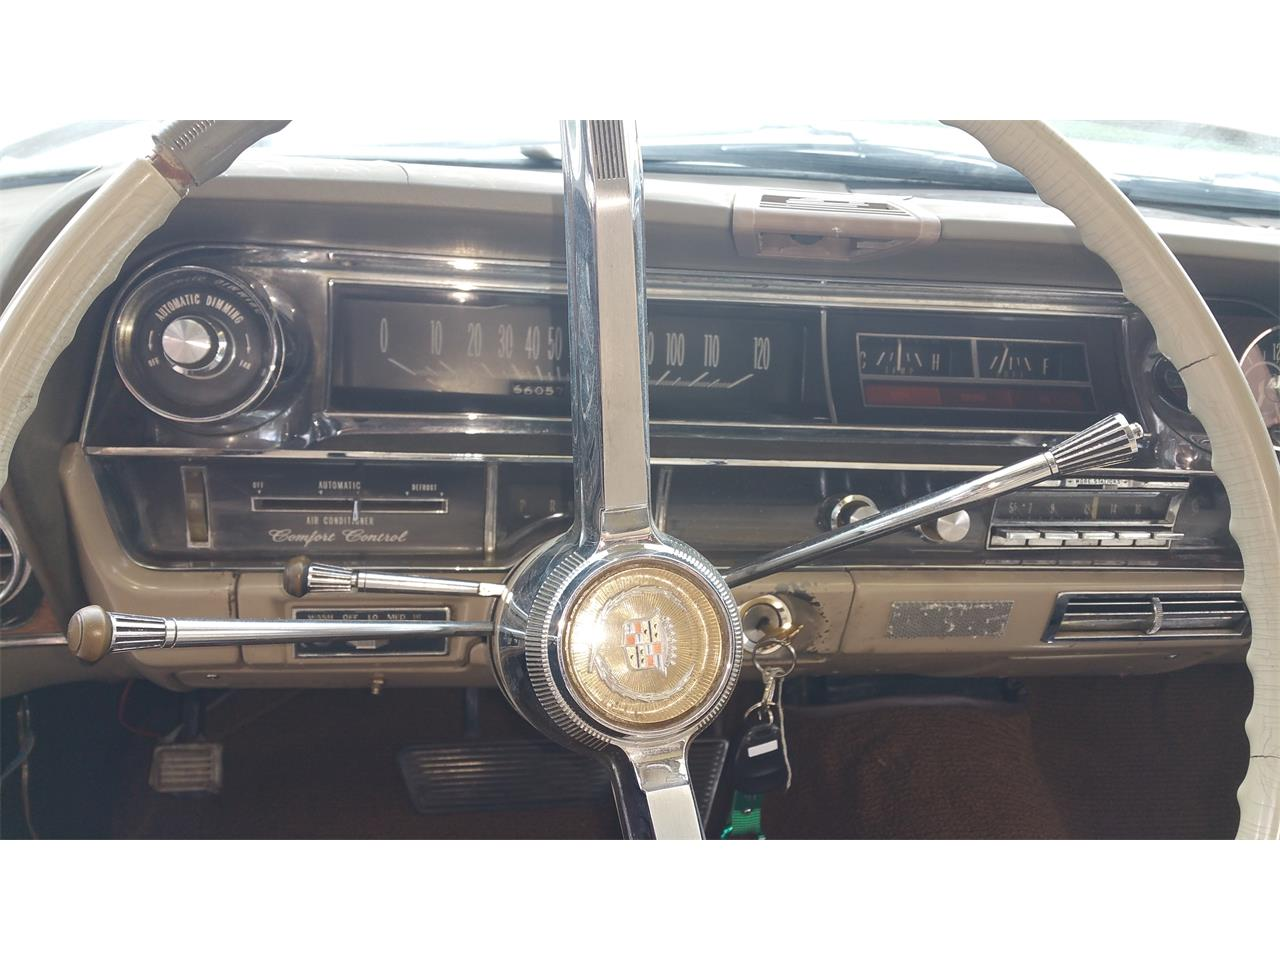 Large Picture of Classic 1964 Fleetwood 60 Special located in Clemmons North Carolina - $7,900.00 Offered by a Private Seller - IDPD